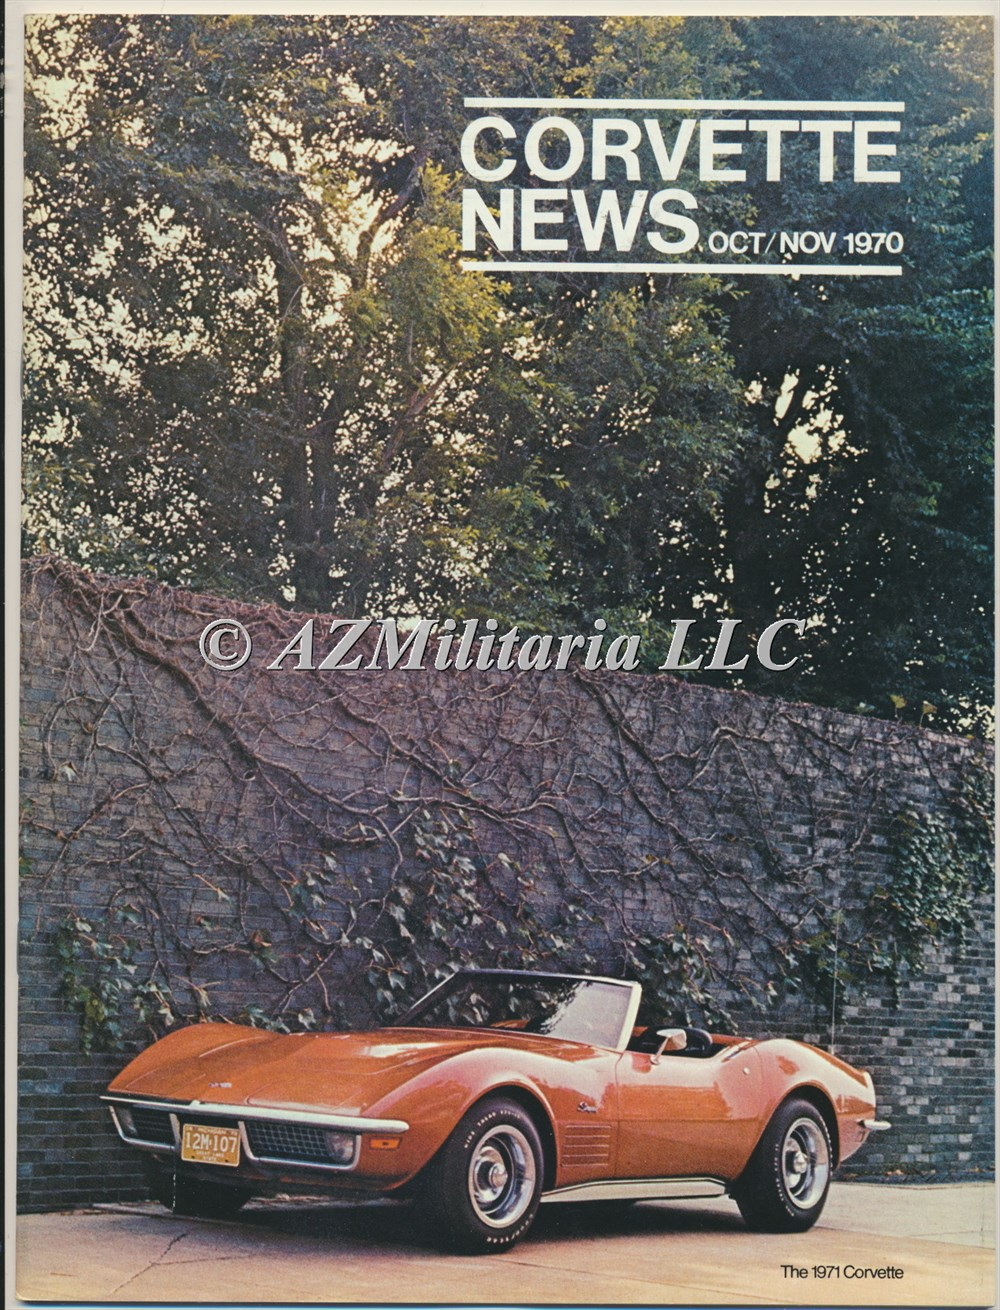 Primary image for Corvette News Oct/Nov 1970